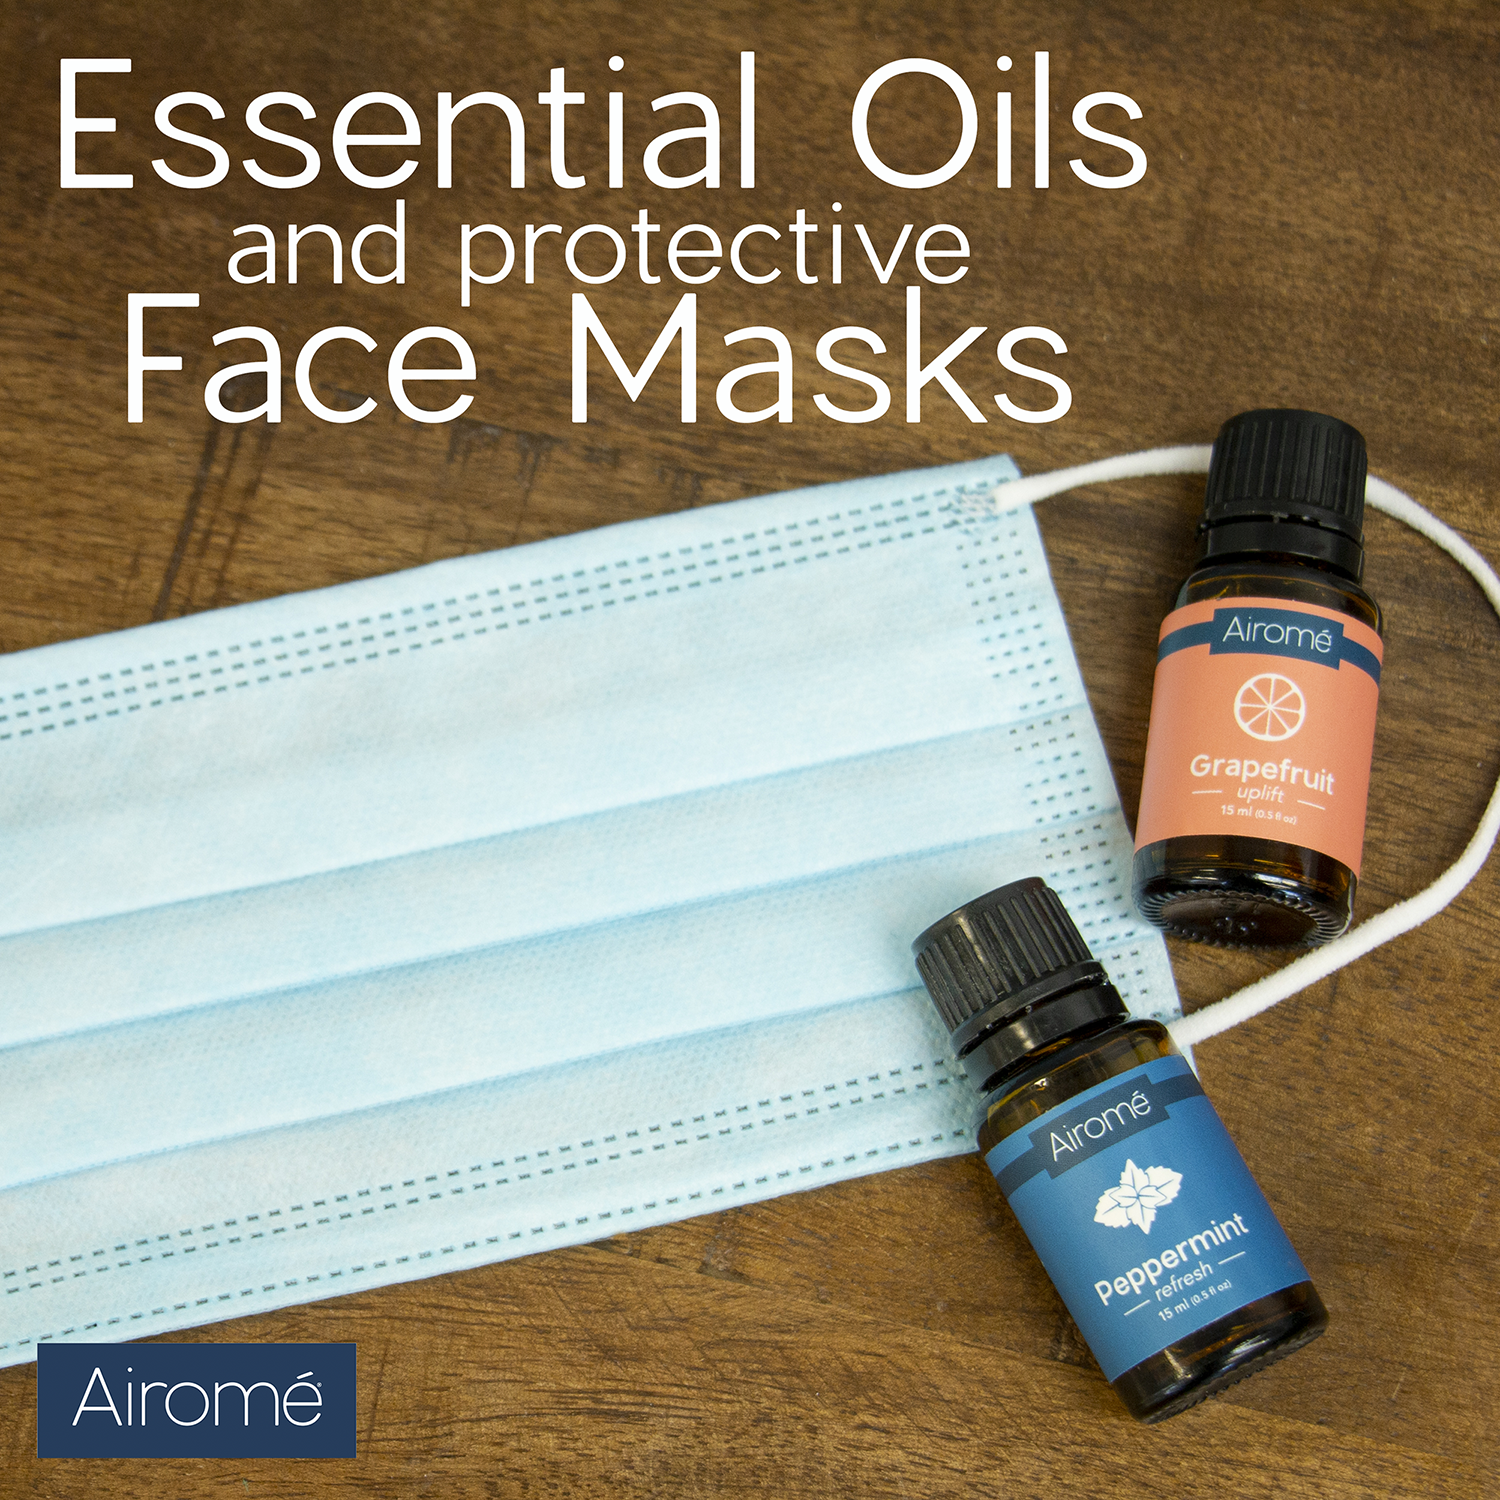 Wearing a face mask comes with its own challenges. Especially for those who have to wear them all day long. Using essential oils in our face mask can support positivity and help boost your mood and energy.